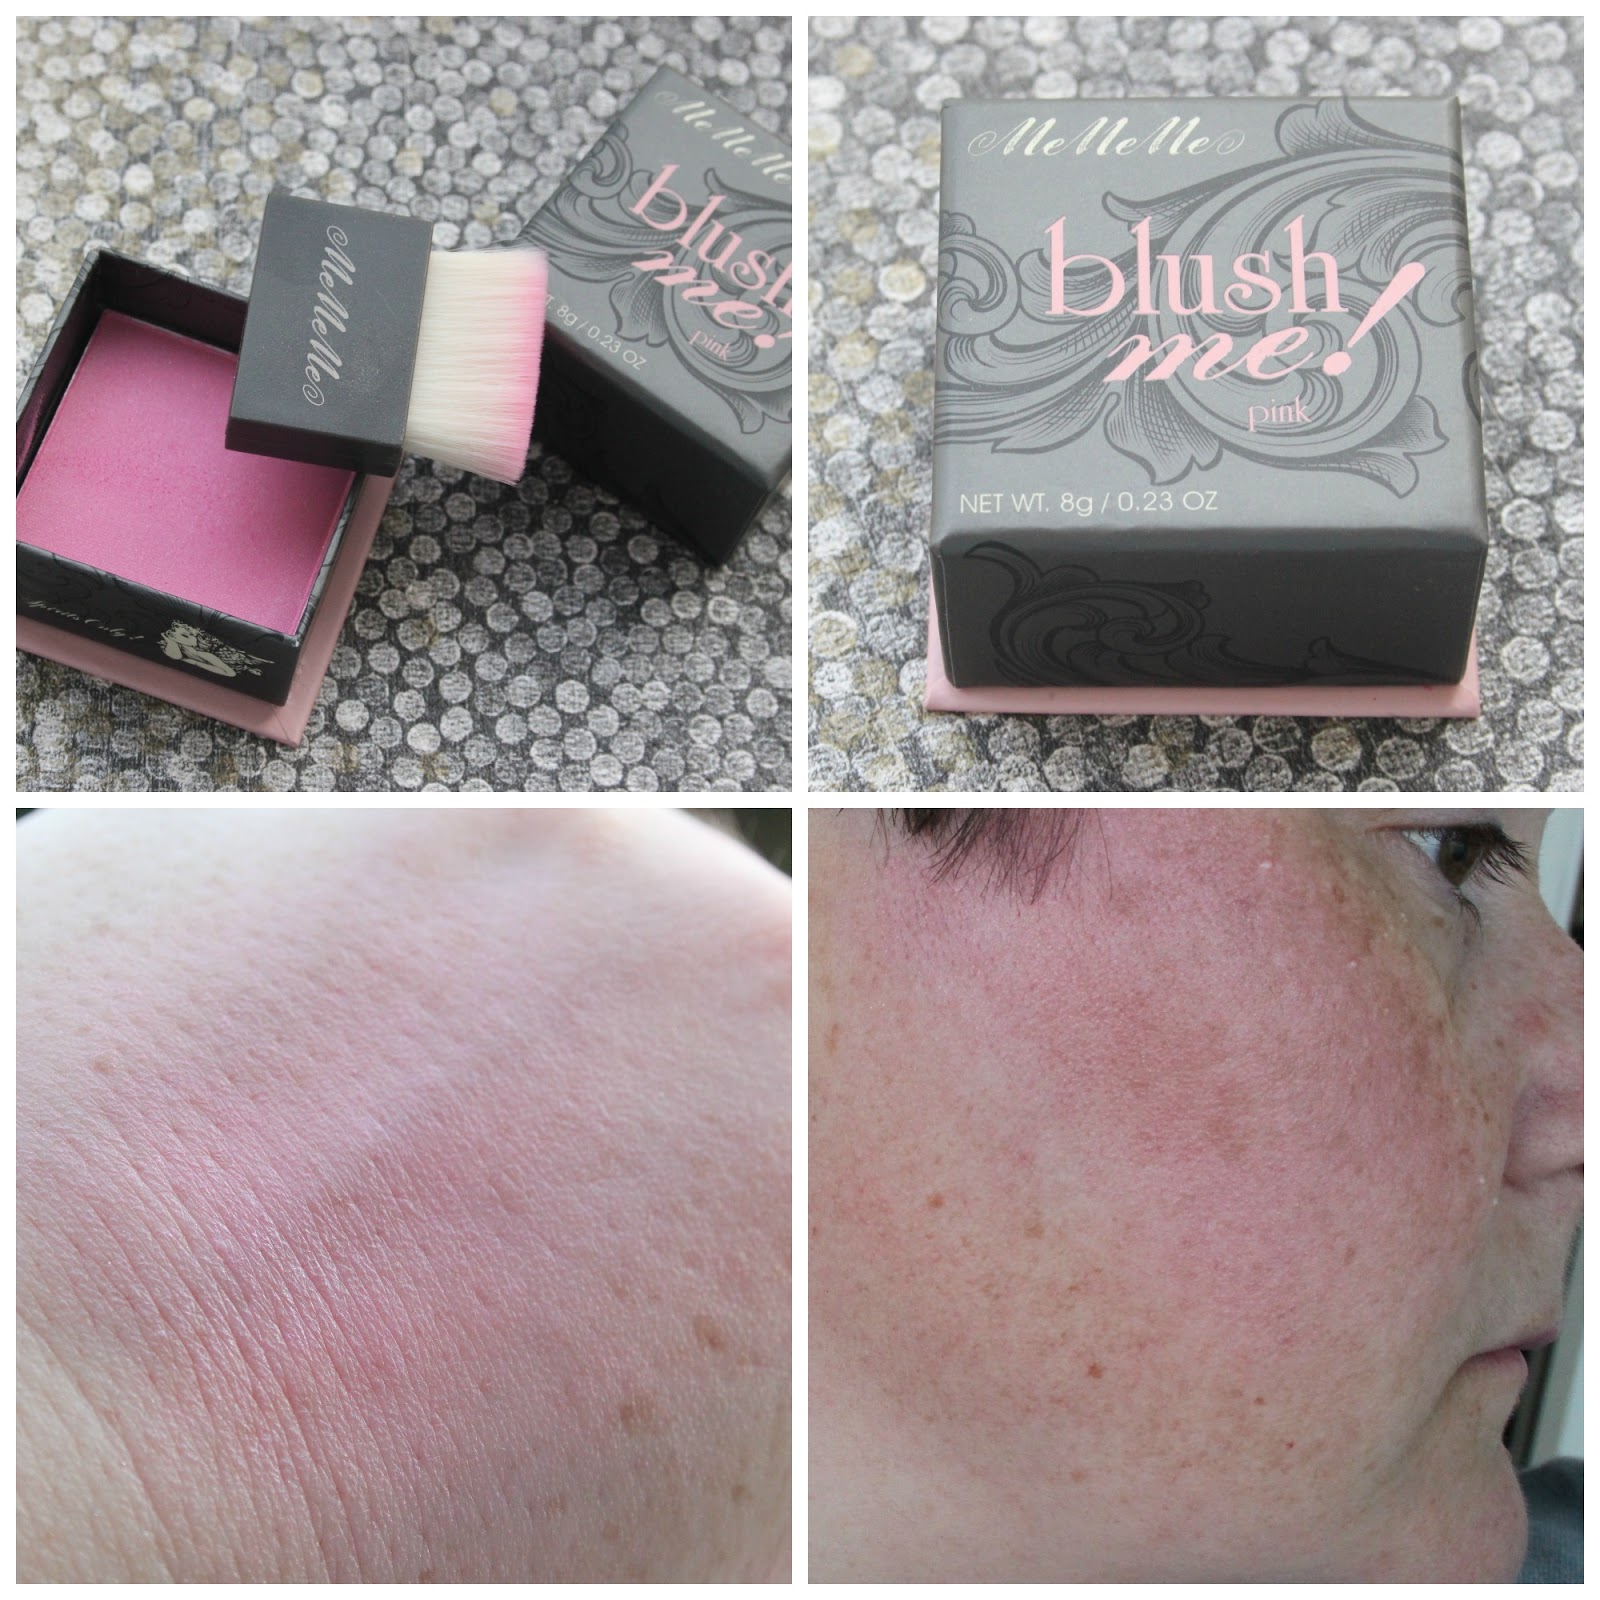 MeMeMe Cosmetics Blush Me swatches in Pink